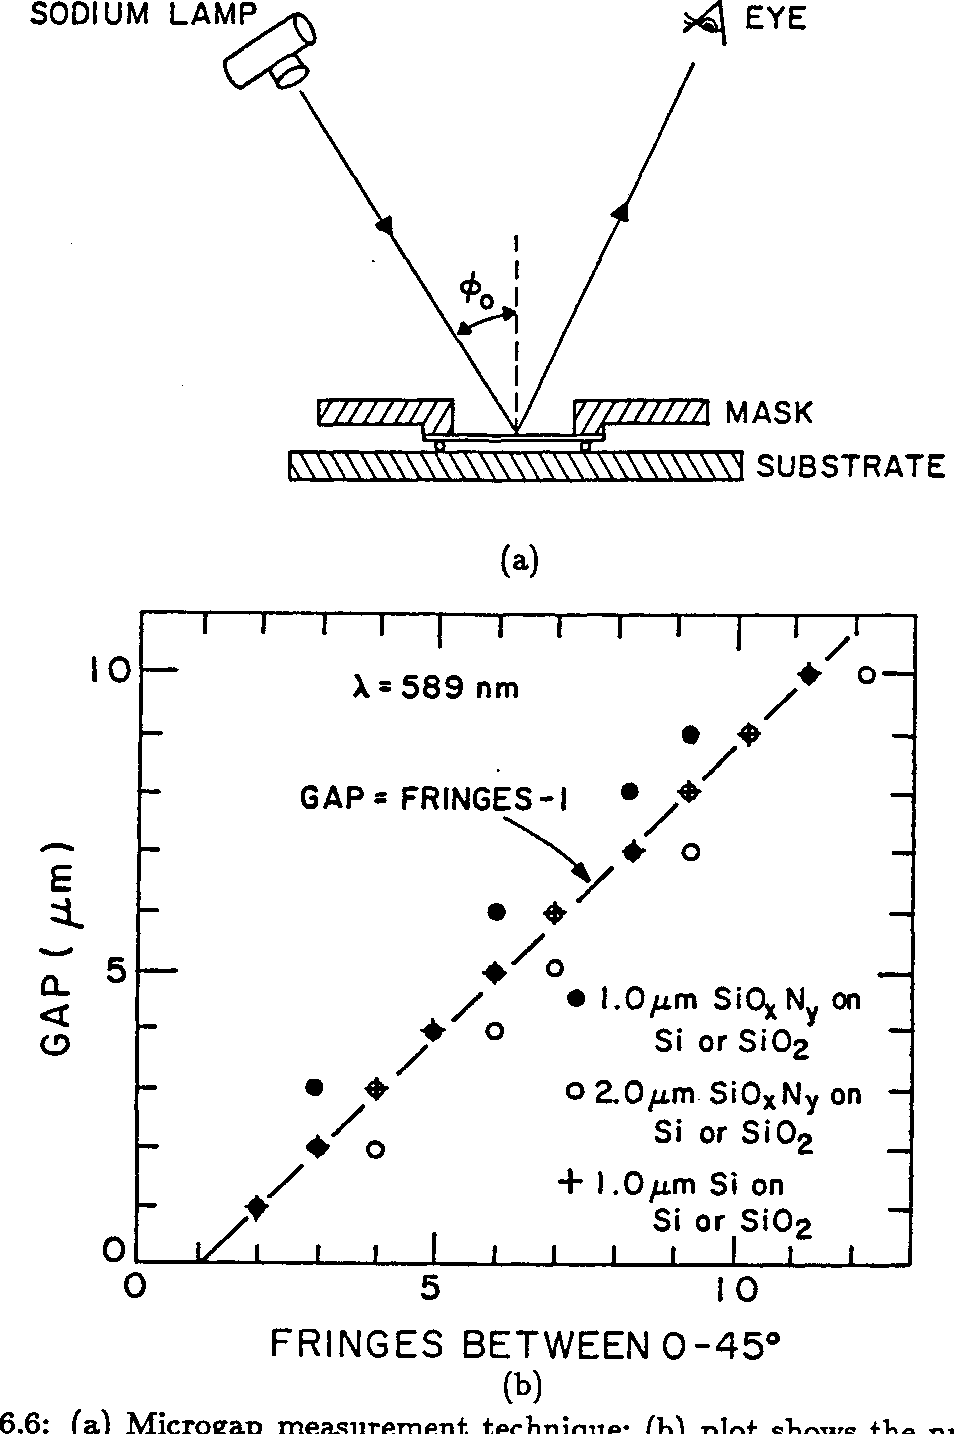 Figure 6.6: (a) Microgap measurement technique; (b) plot shows the number of fringes expected for a given gap for different membrane materials and thicknesses, from reference [27].